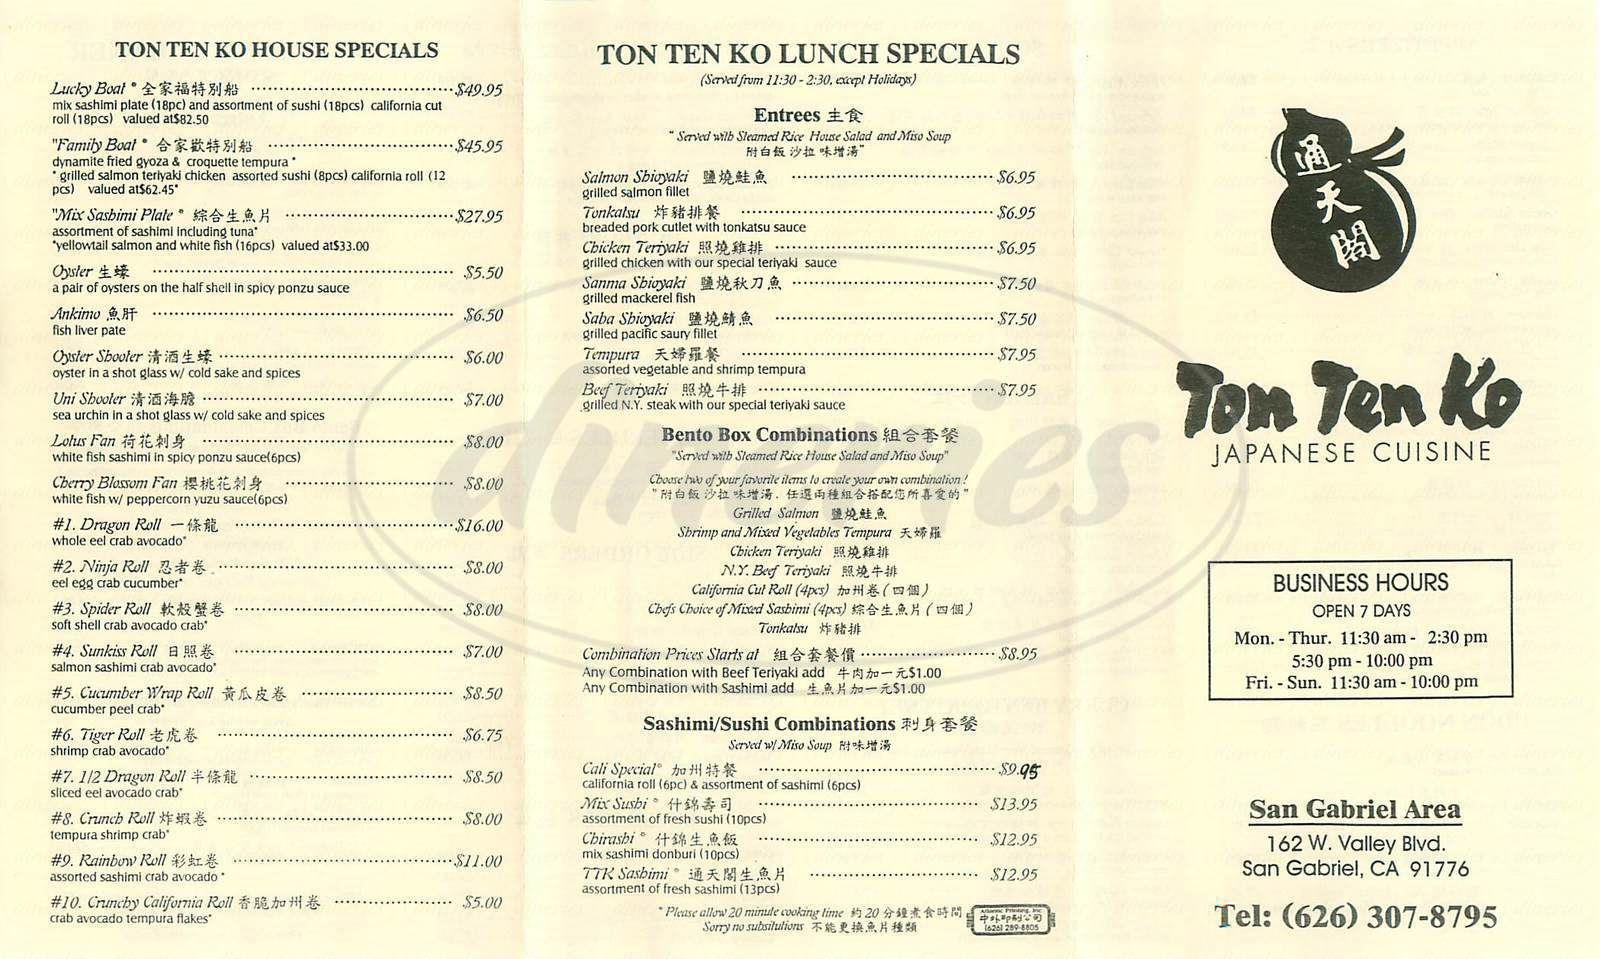 menu for Ton Ten Ko